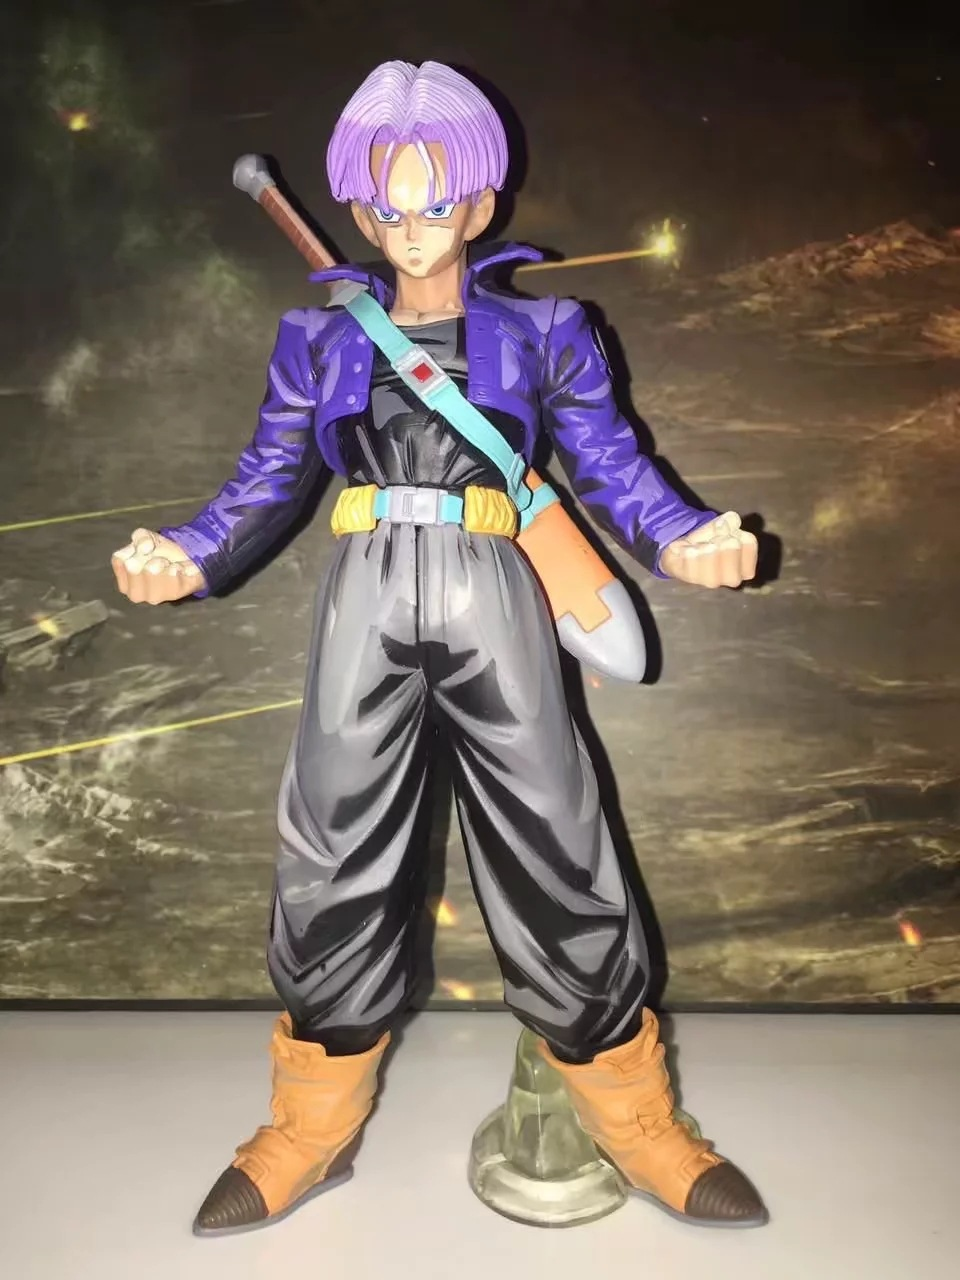 Anime Dragon Ball Z MSP Master Stars Piece Super Saiyan Trunks Manga Ver. PVC Action Figure Collectible Model Toys Doll 25cm dragon ball z black vegeta trunks pvc action figure collectible model toy super big size 44cm 40cm